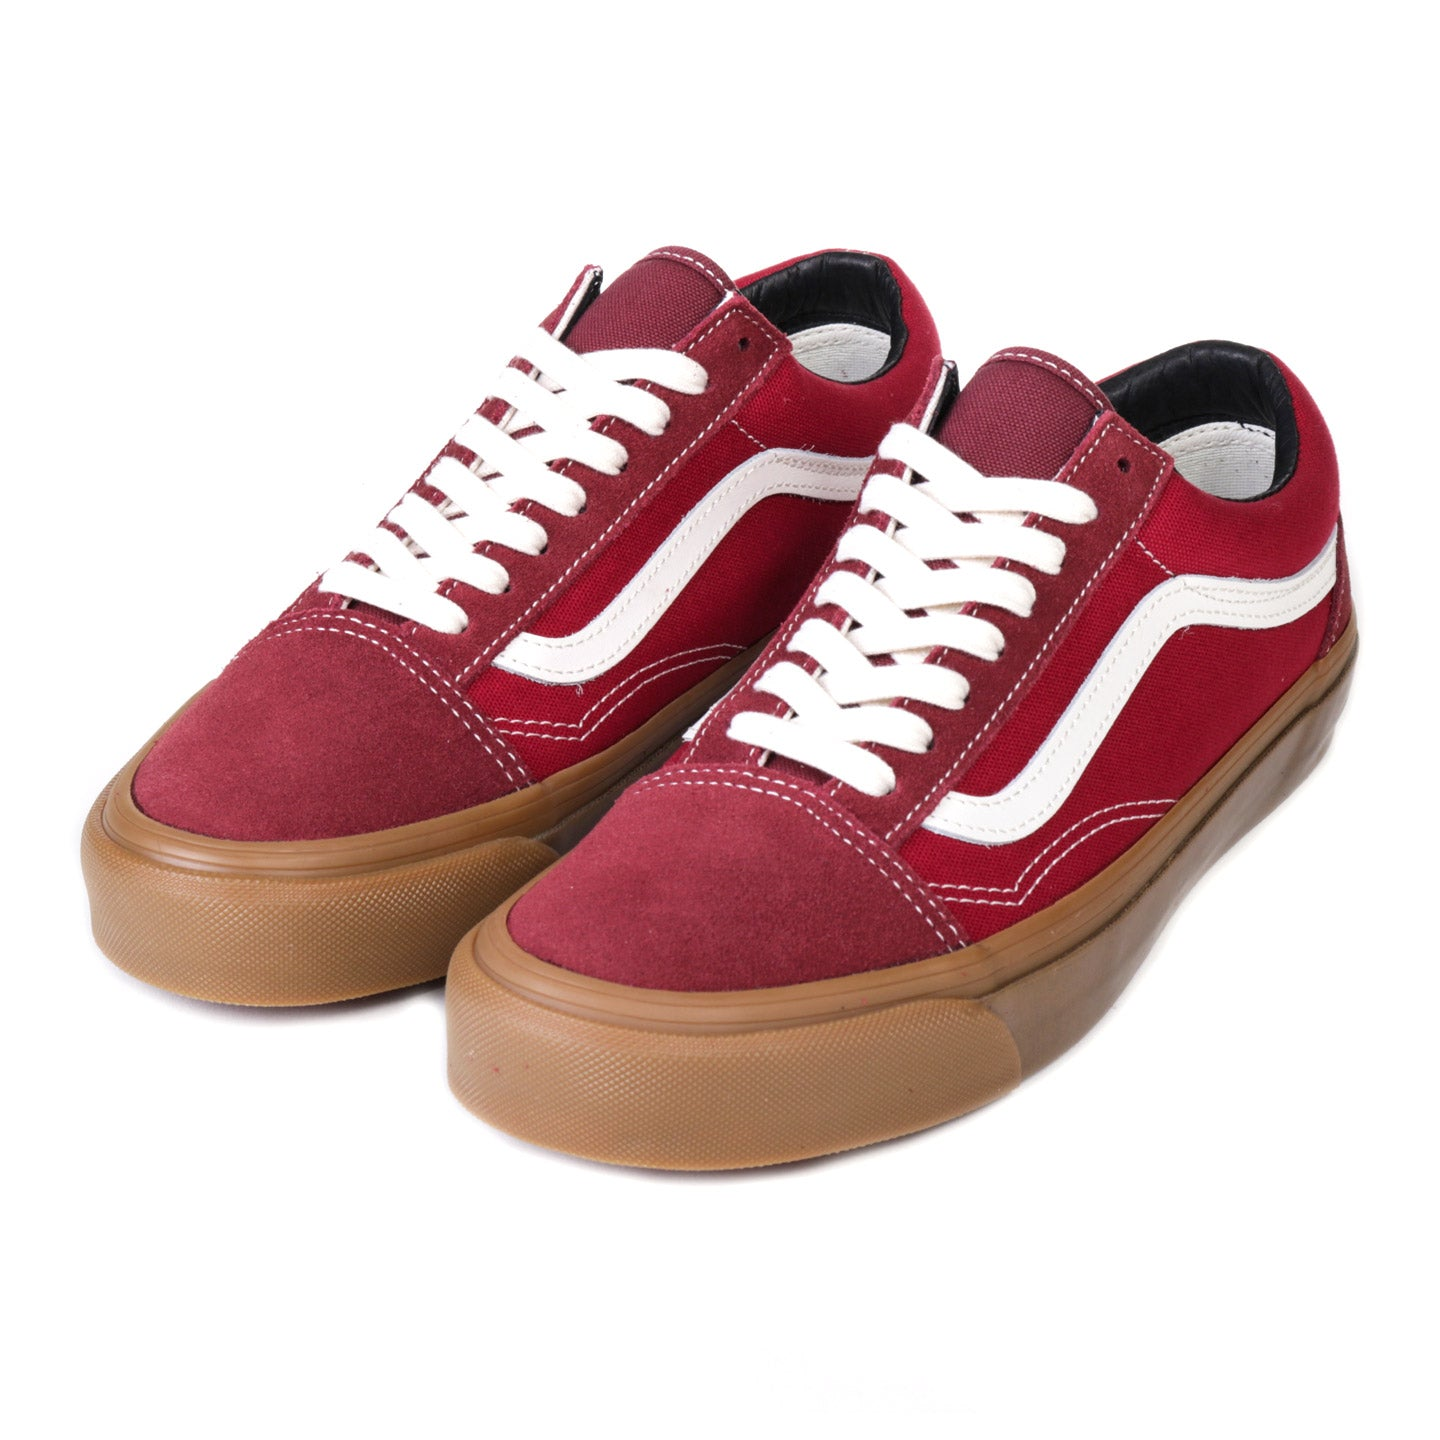 VAULT BY VANS OG OLD SKOOL LX MADDER BROWN / JESTER RED